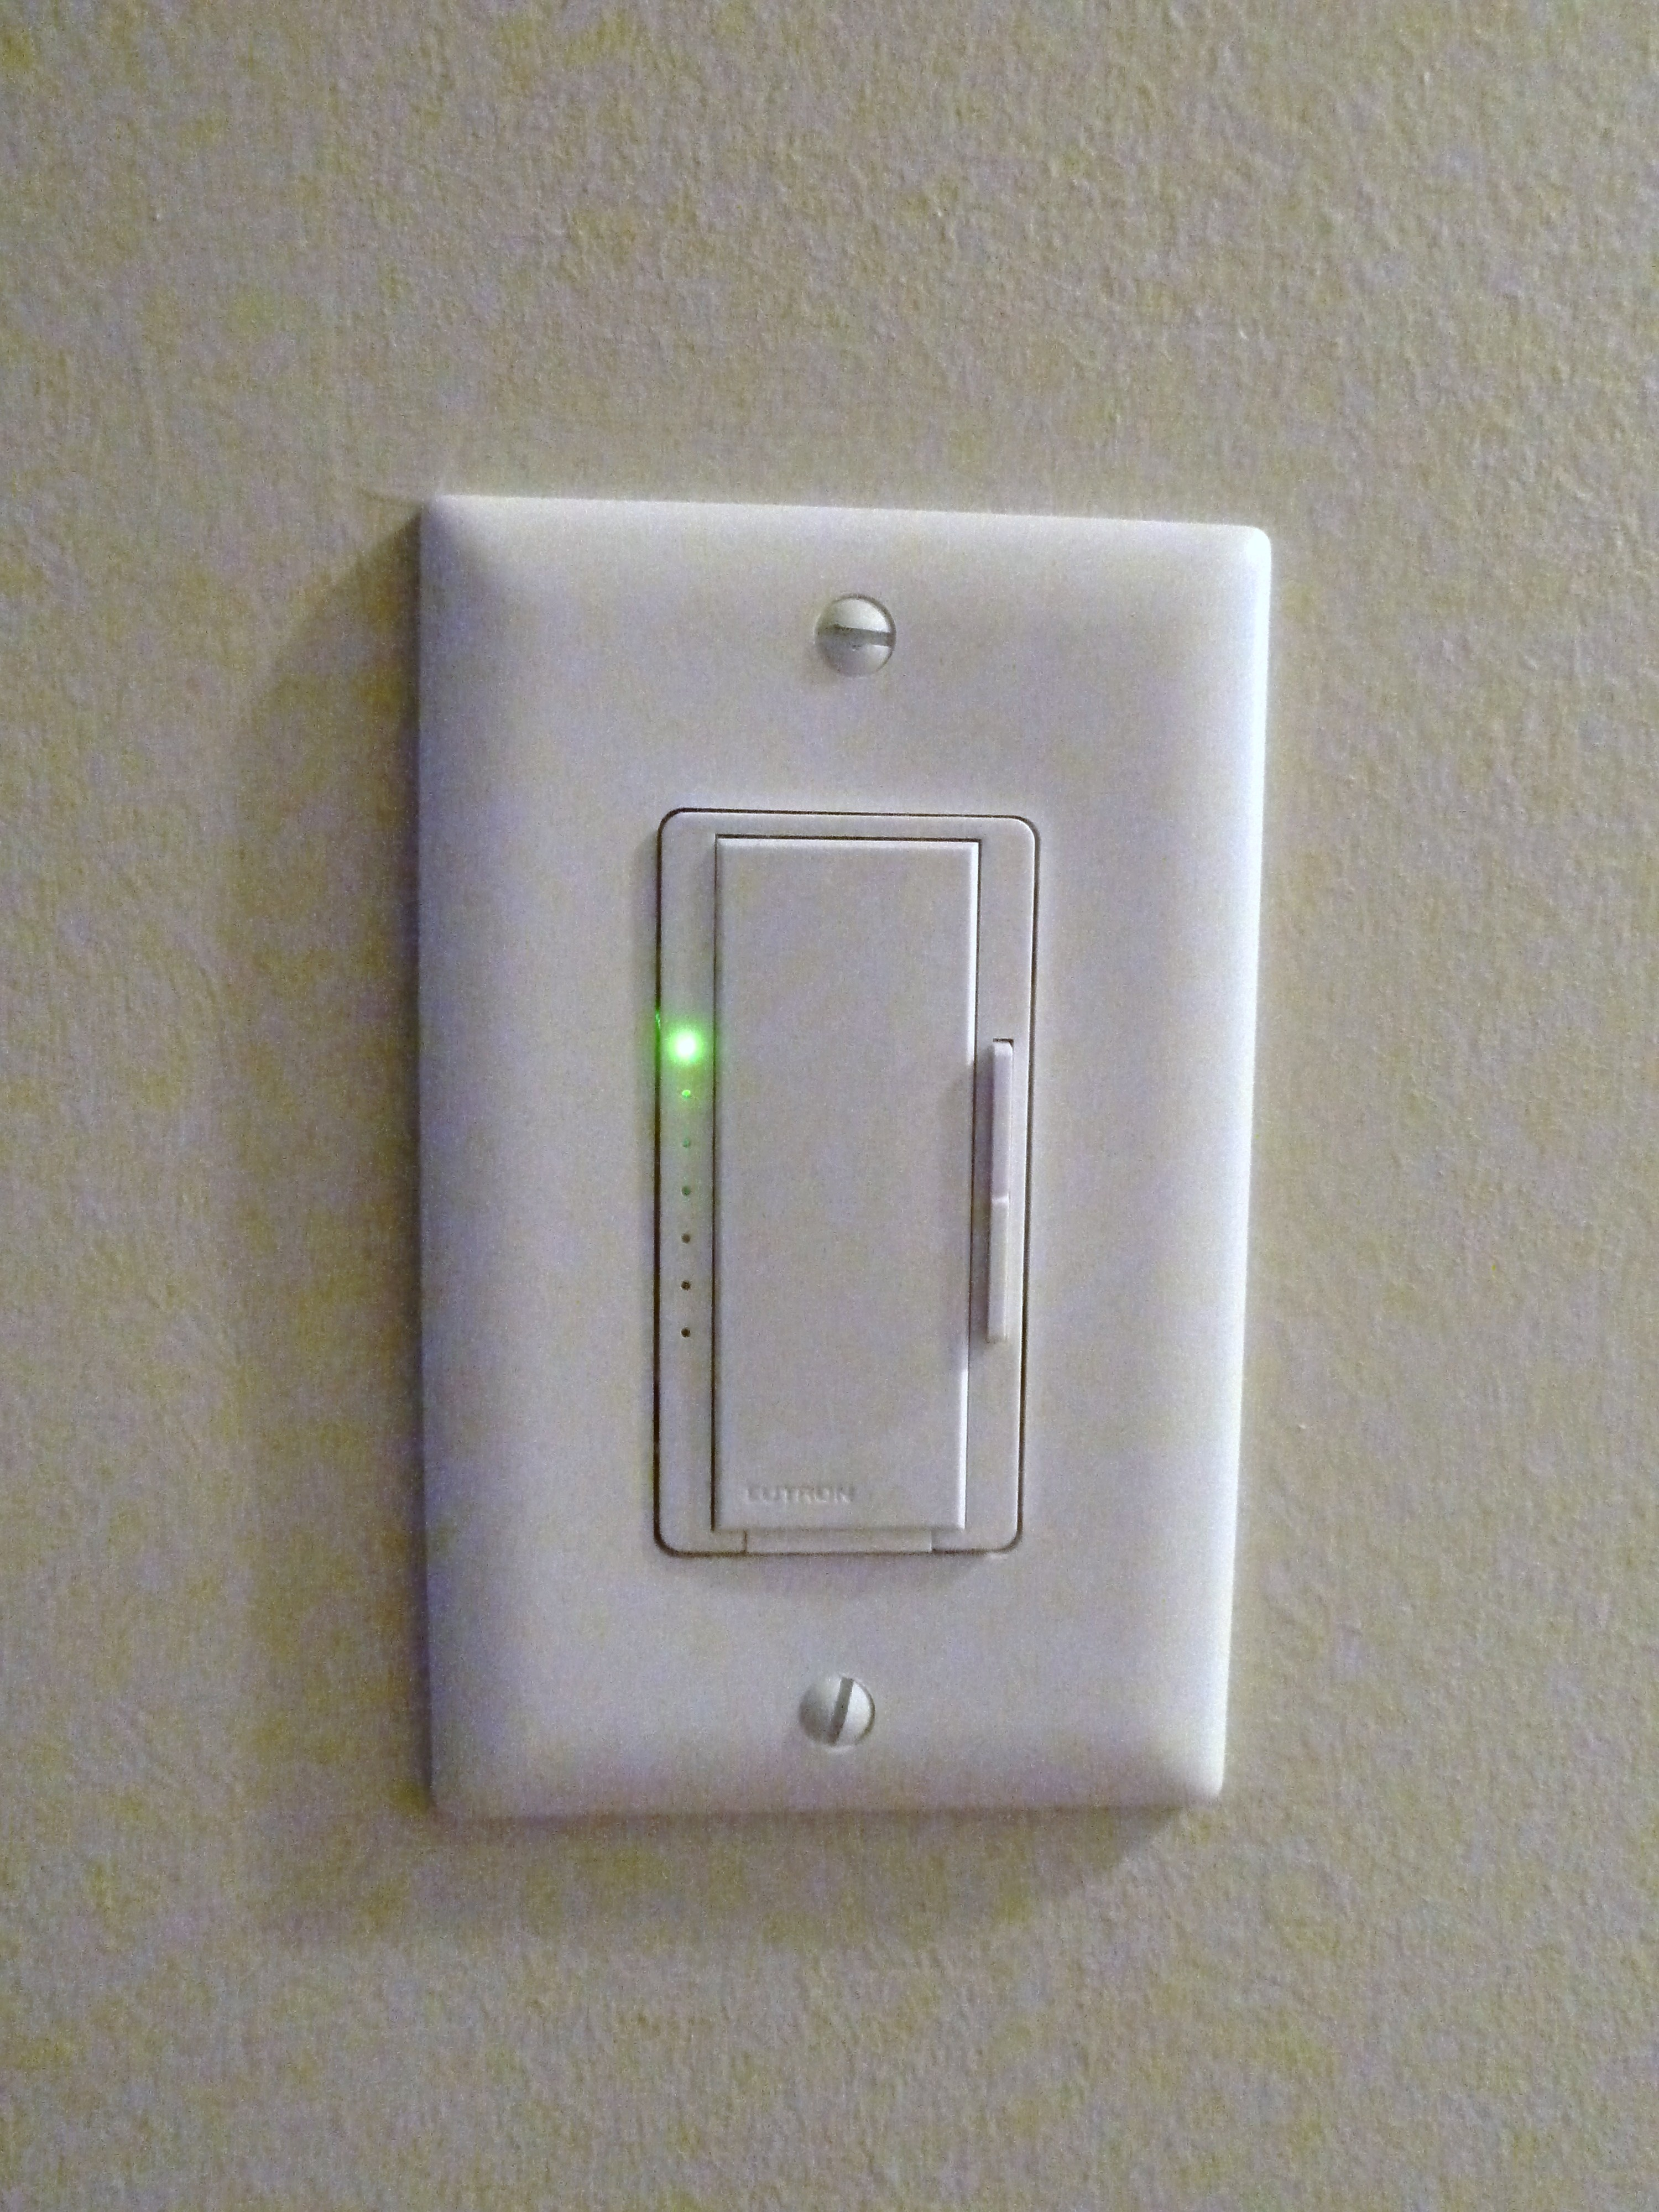 Light switch | The Mace Place